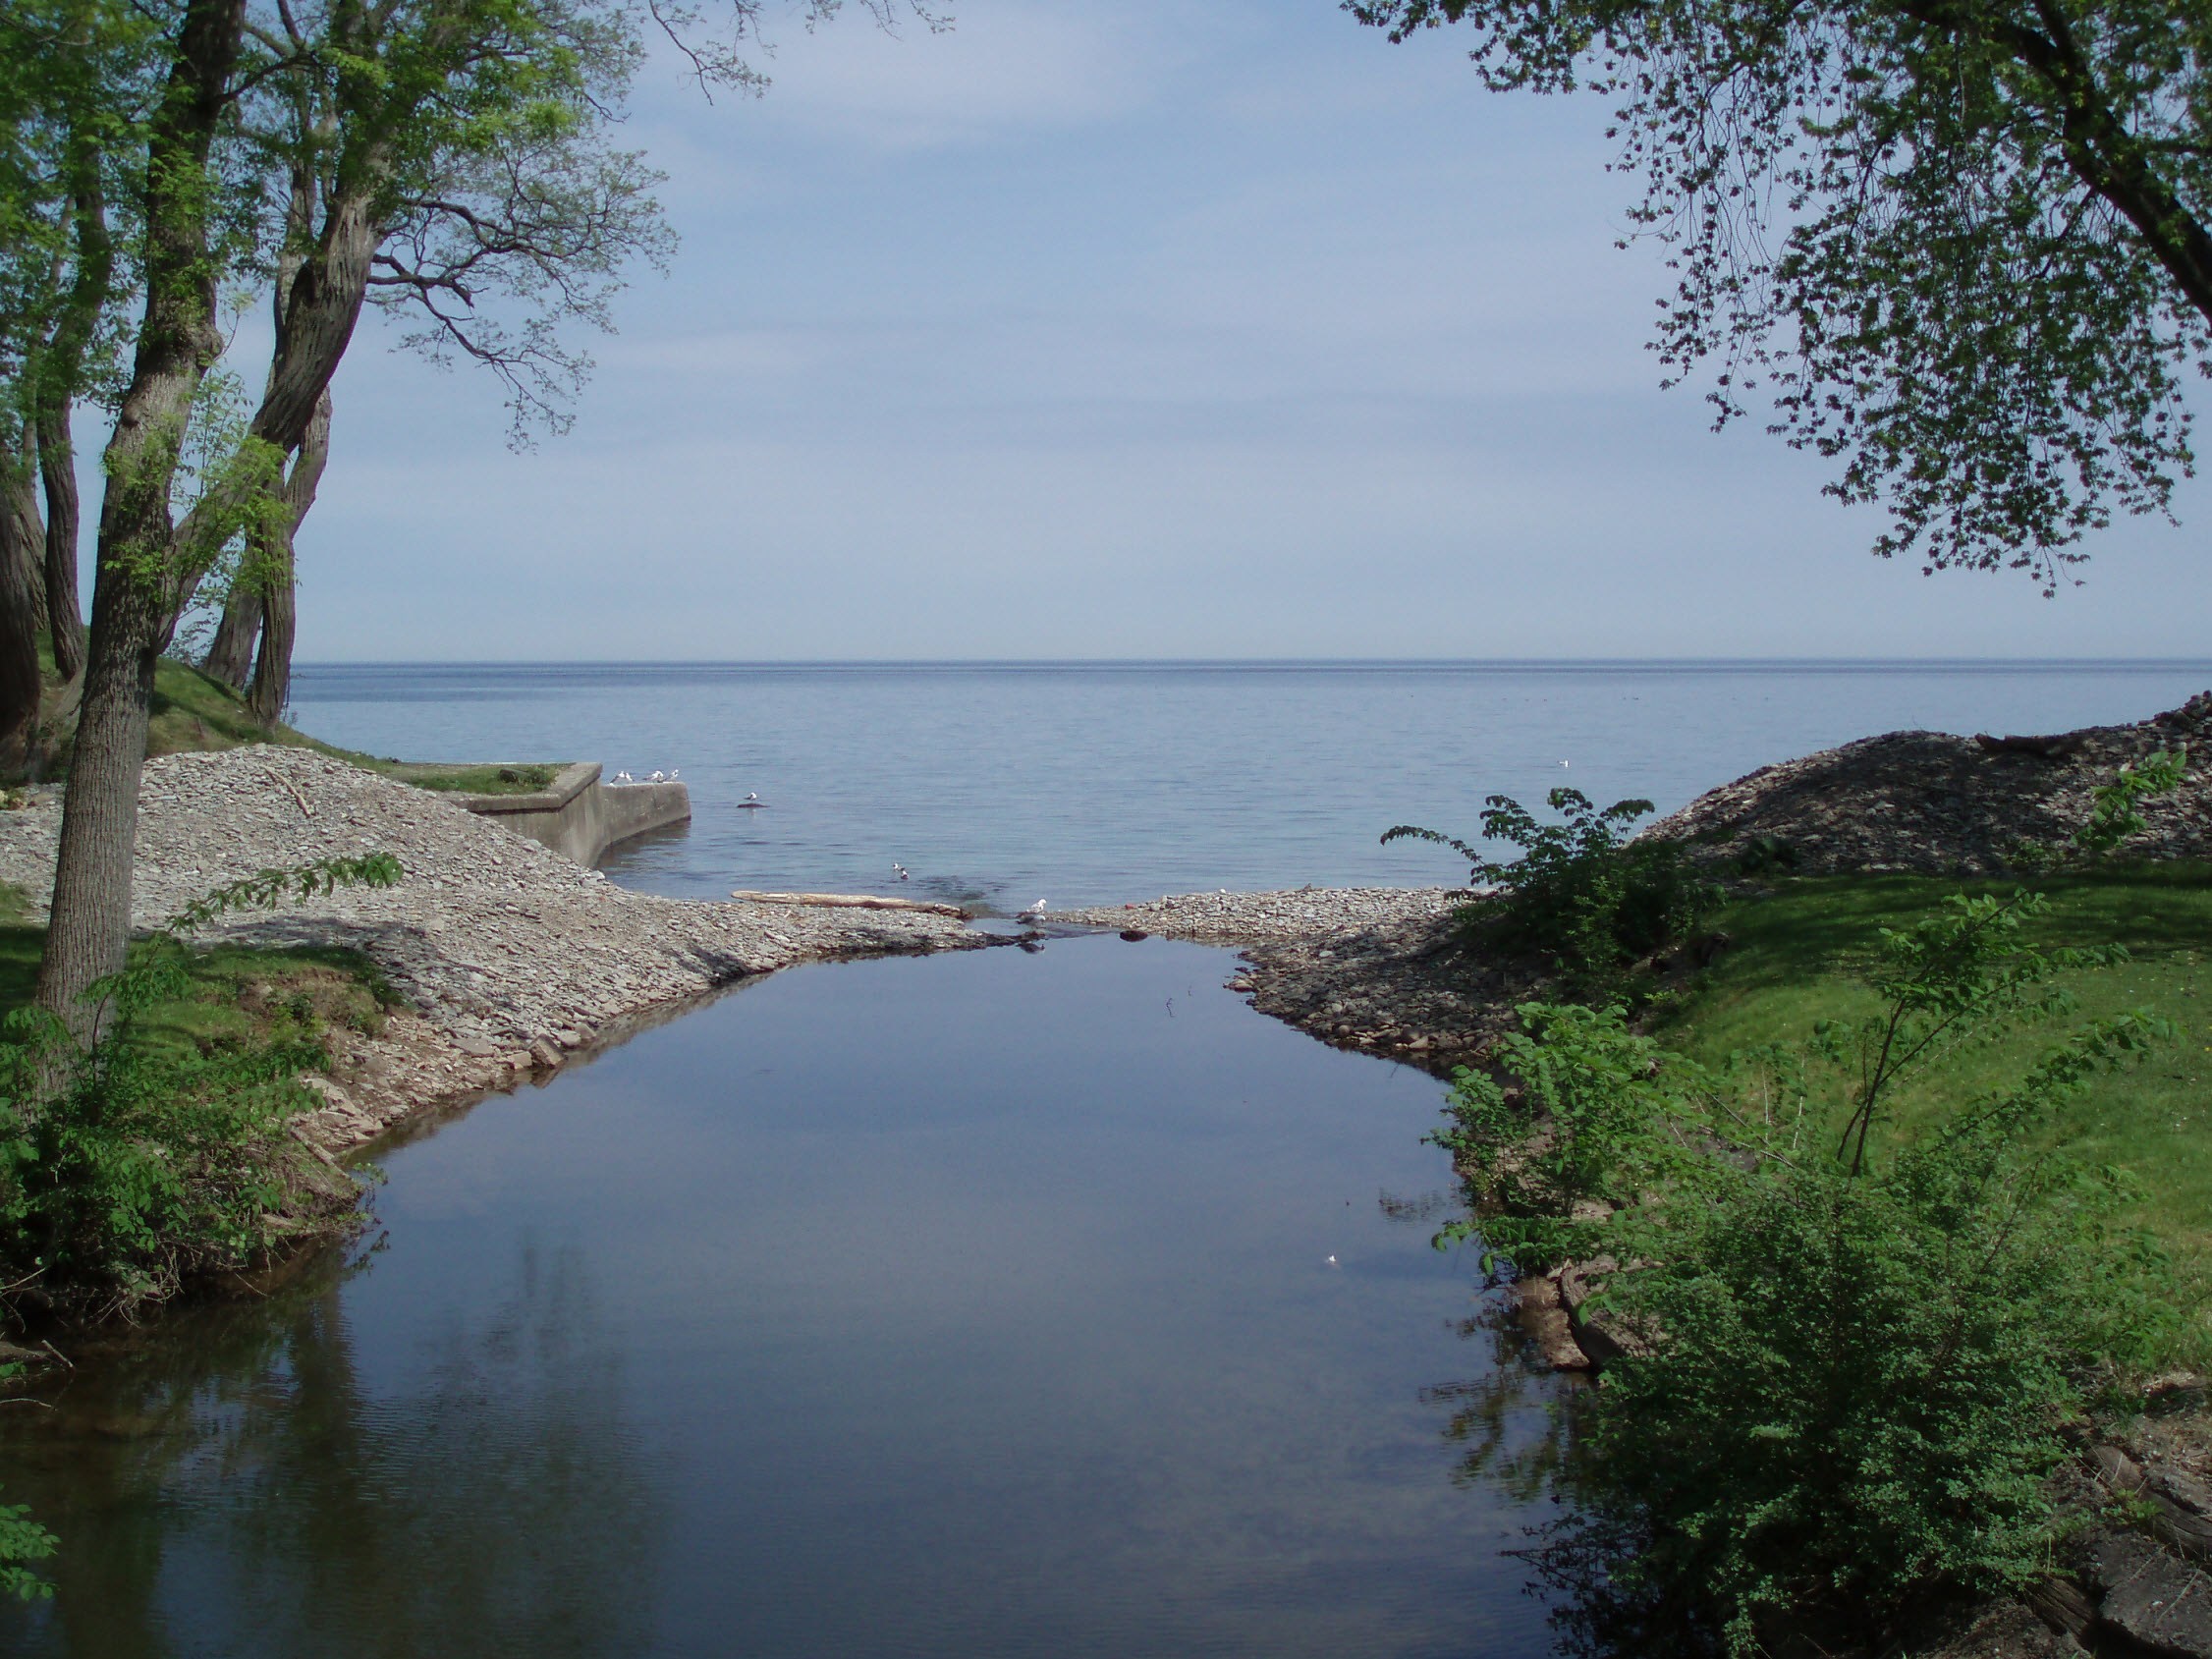 Lake_Ontario,_visible_from_the_campus_of_Appleby_College_(2009-05-22)